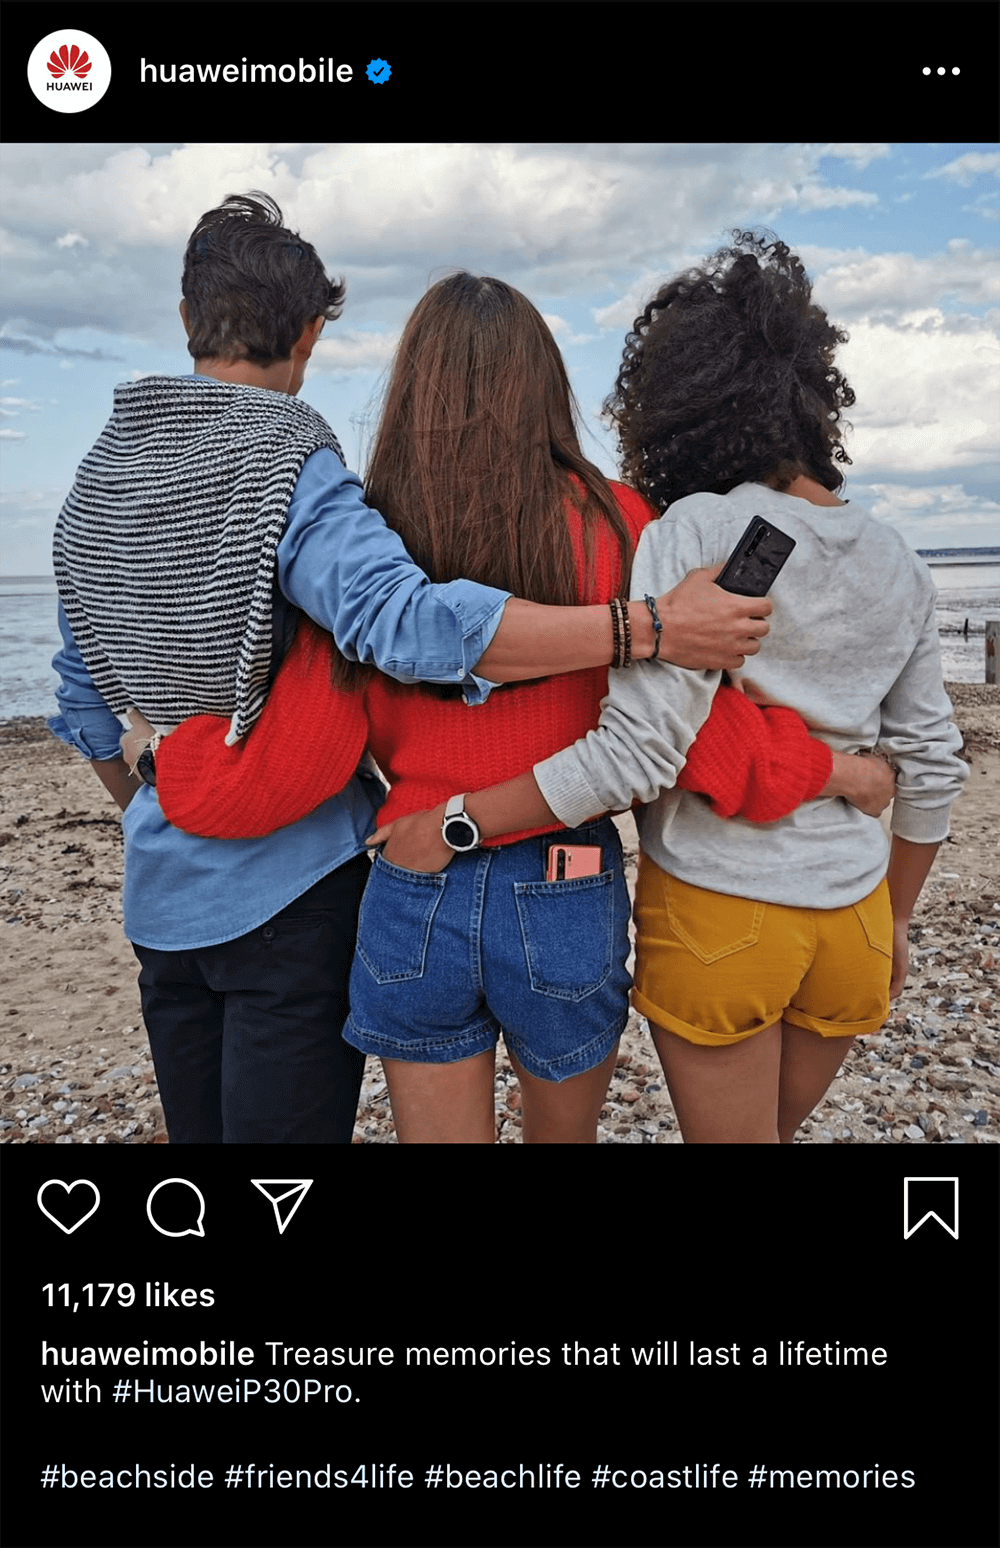 Huawei Instagram post with a photo of three people